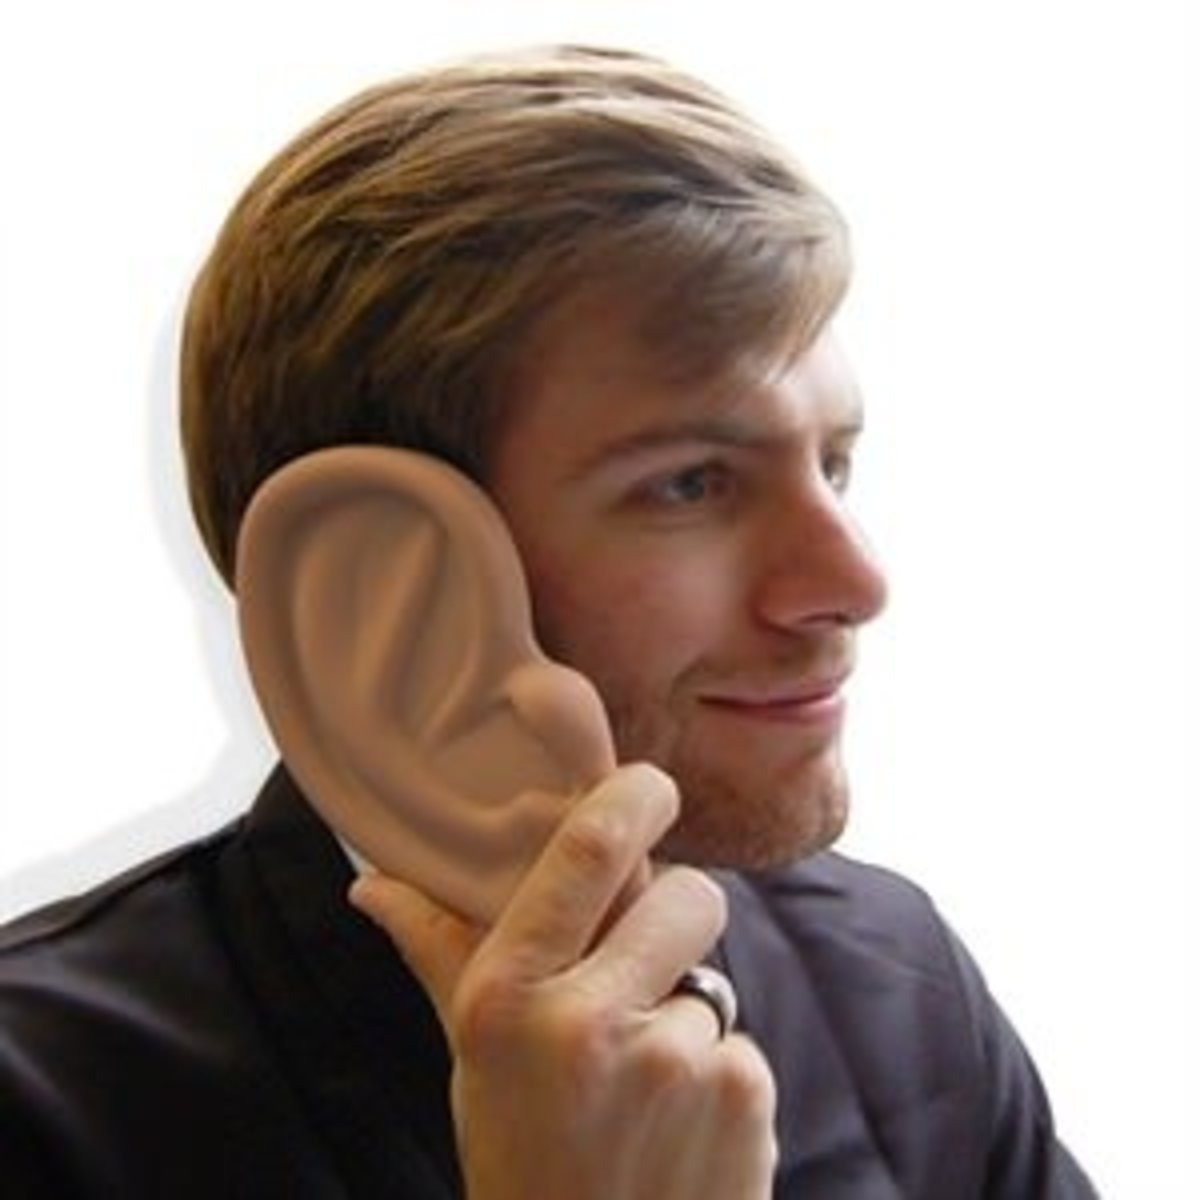 The 3D silicone iPhone ear case